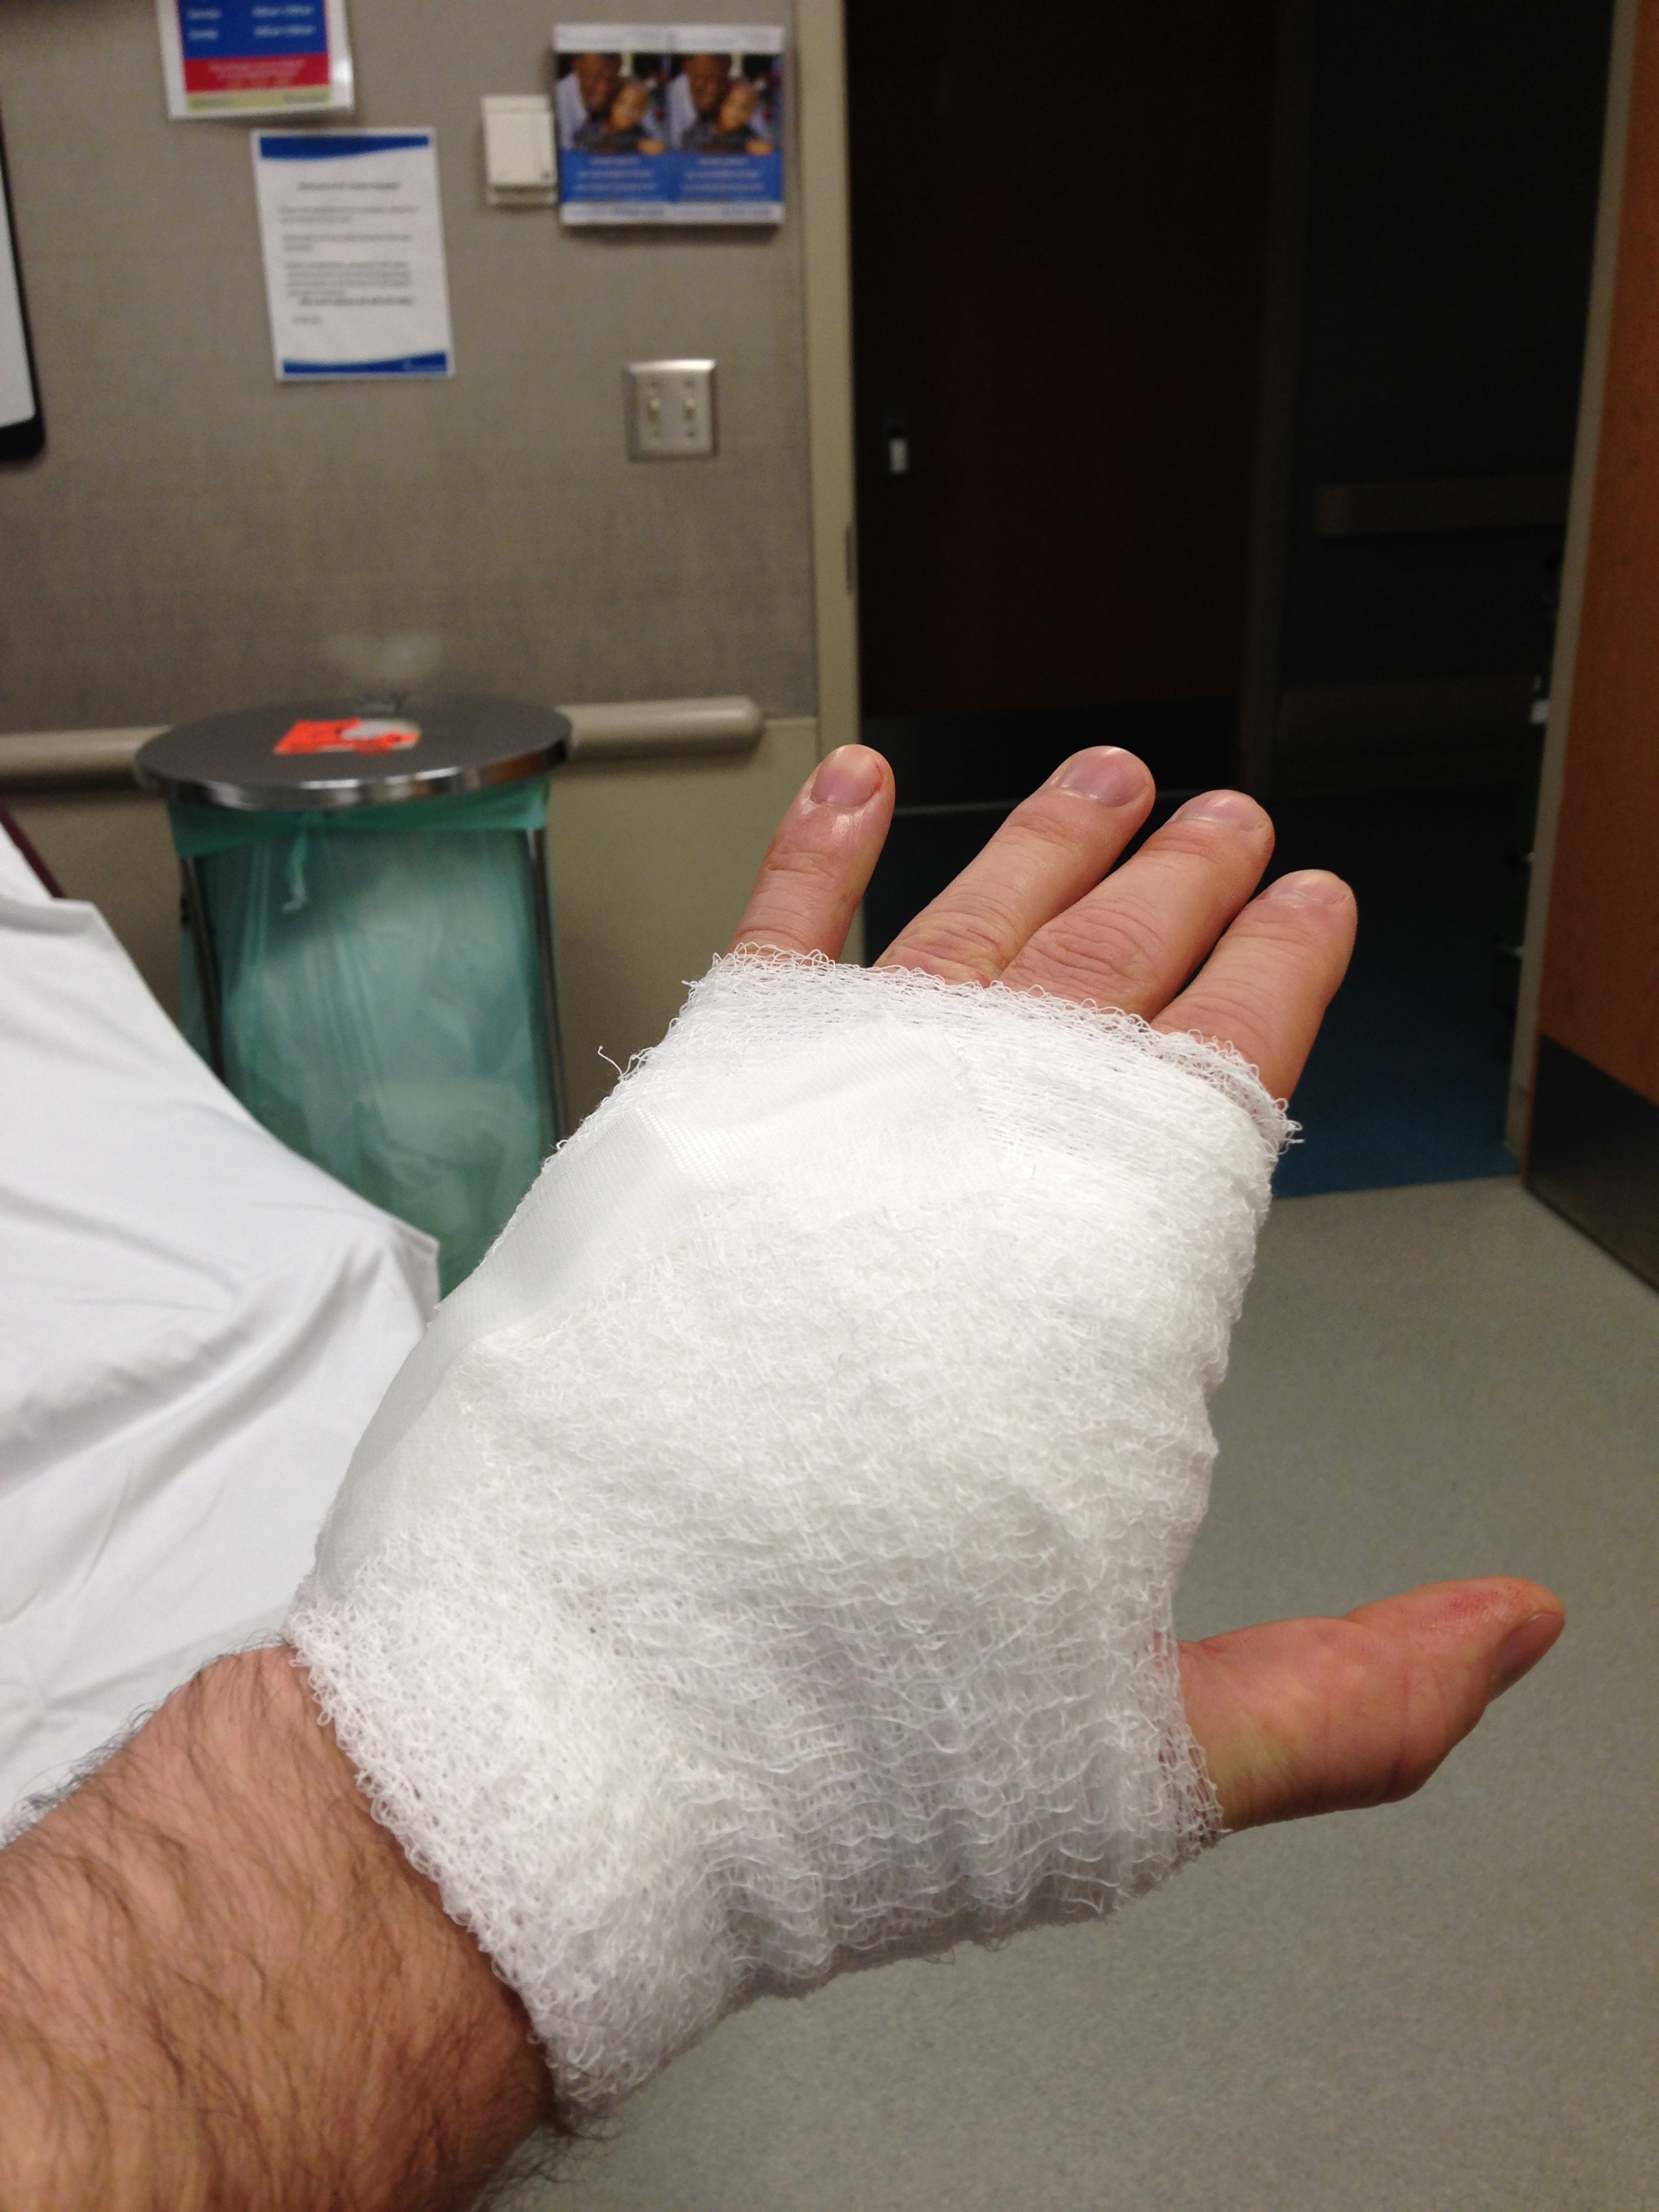 bandaged hand wrapped in gauss at hospital